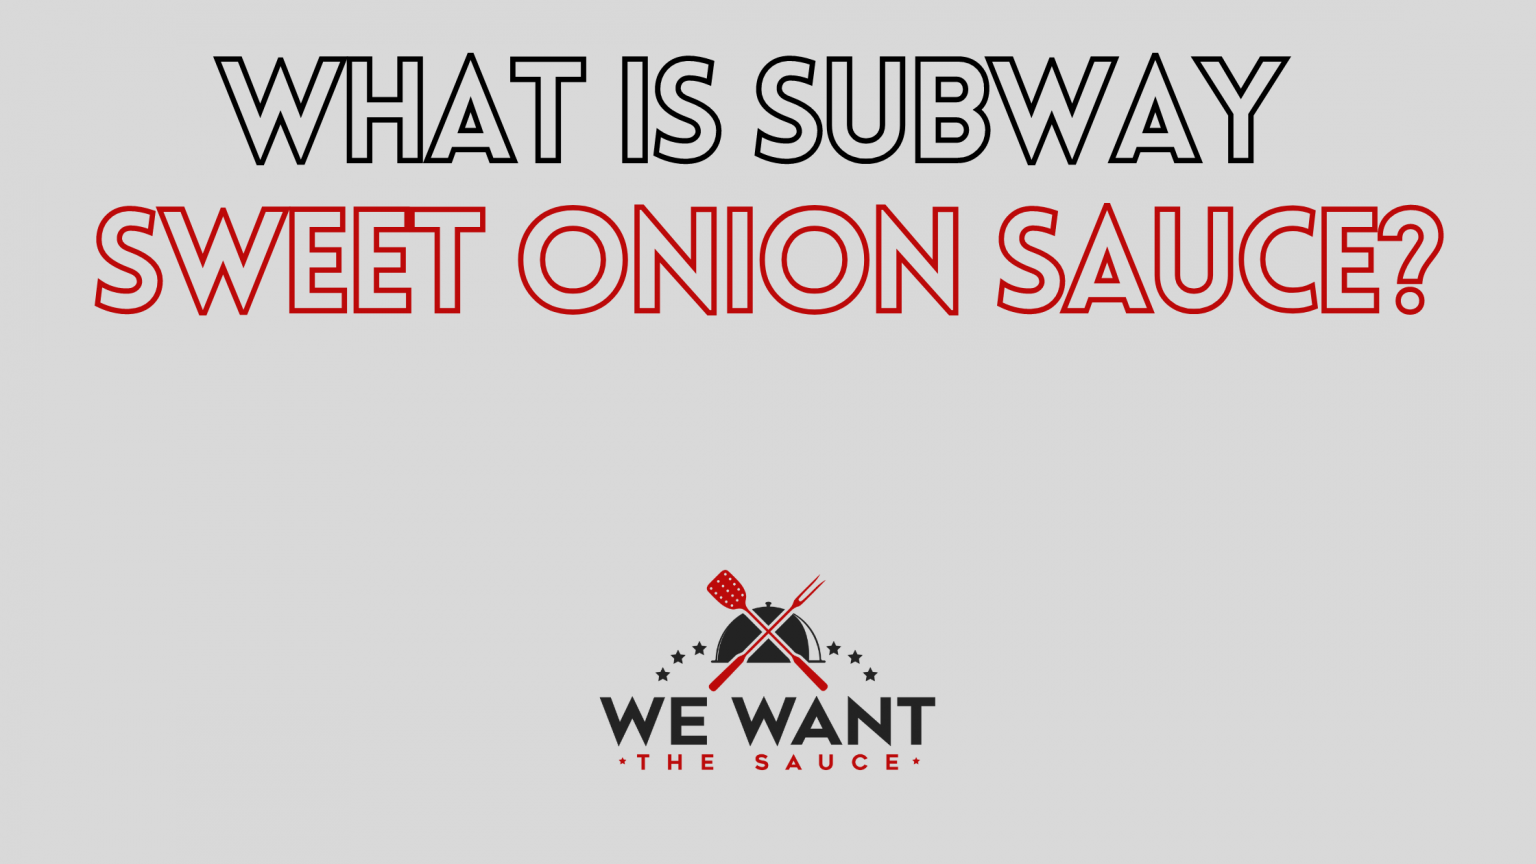 What Is Subway Sweet Onion Sauce?